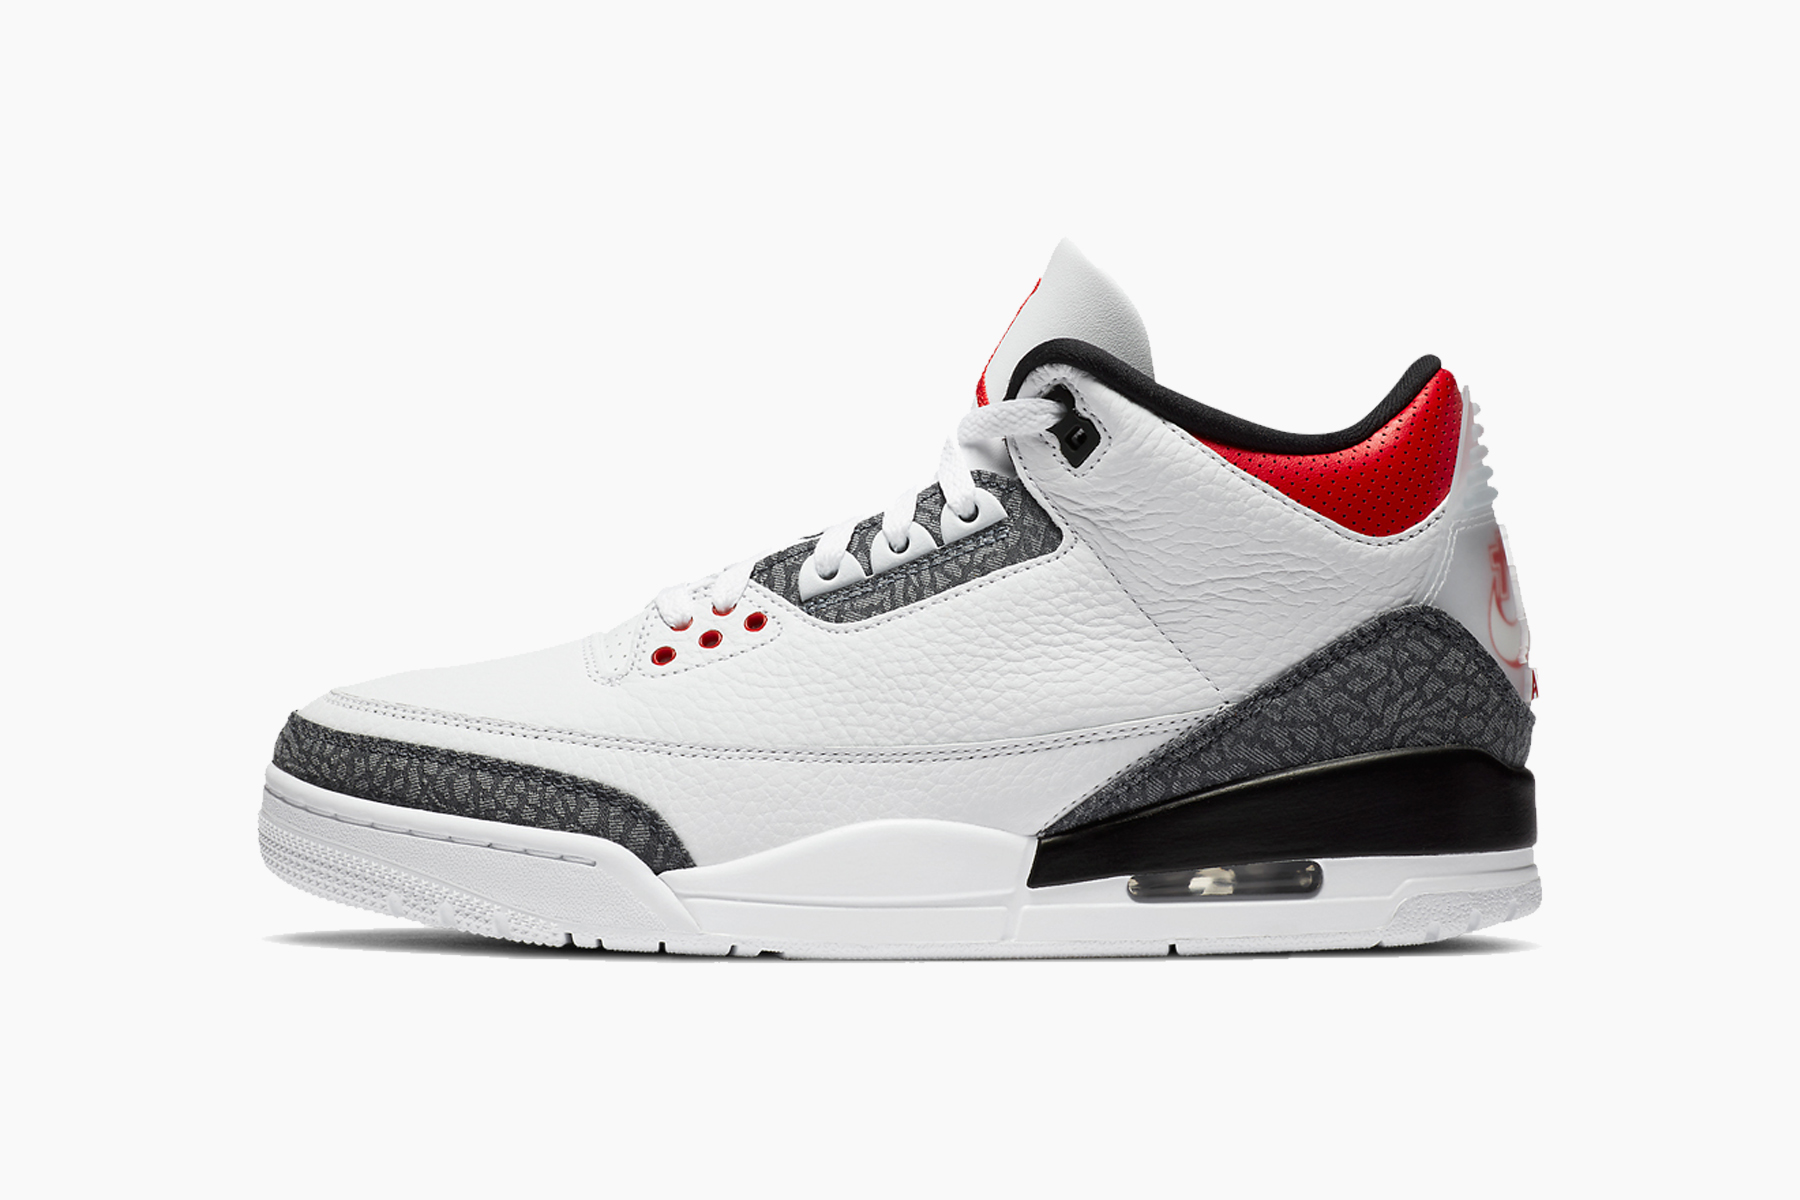 Air Jordan 3 CO.JP